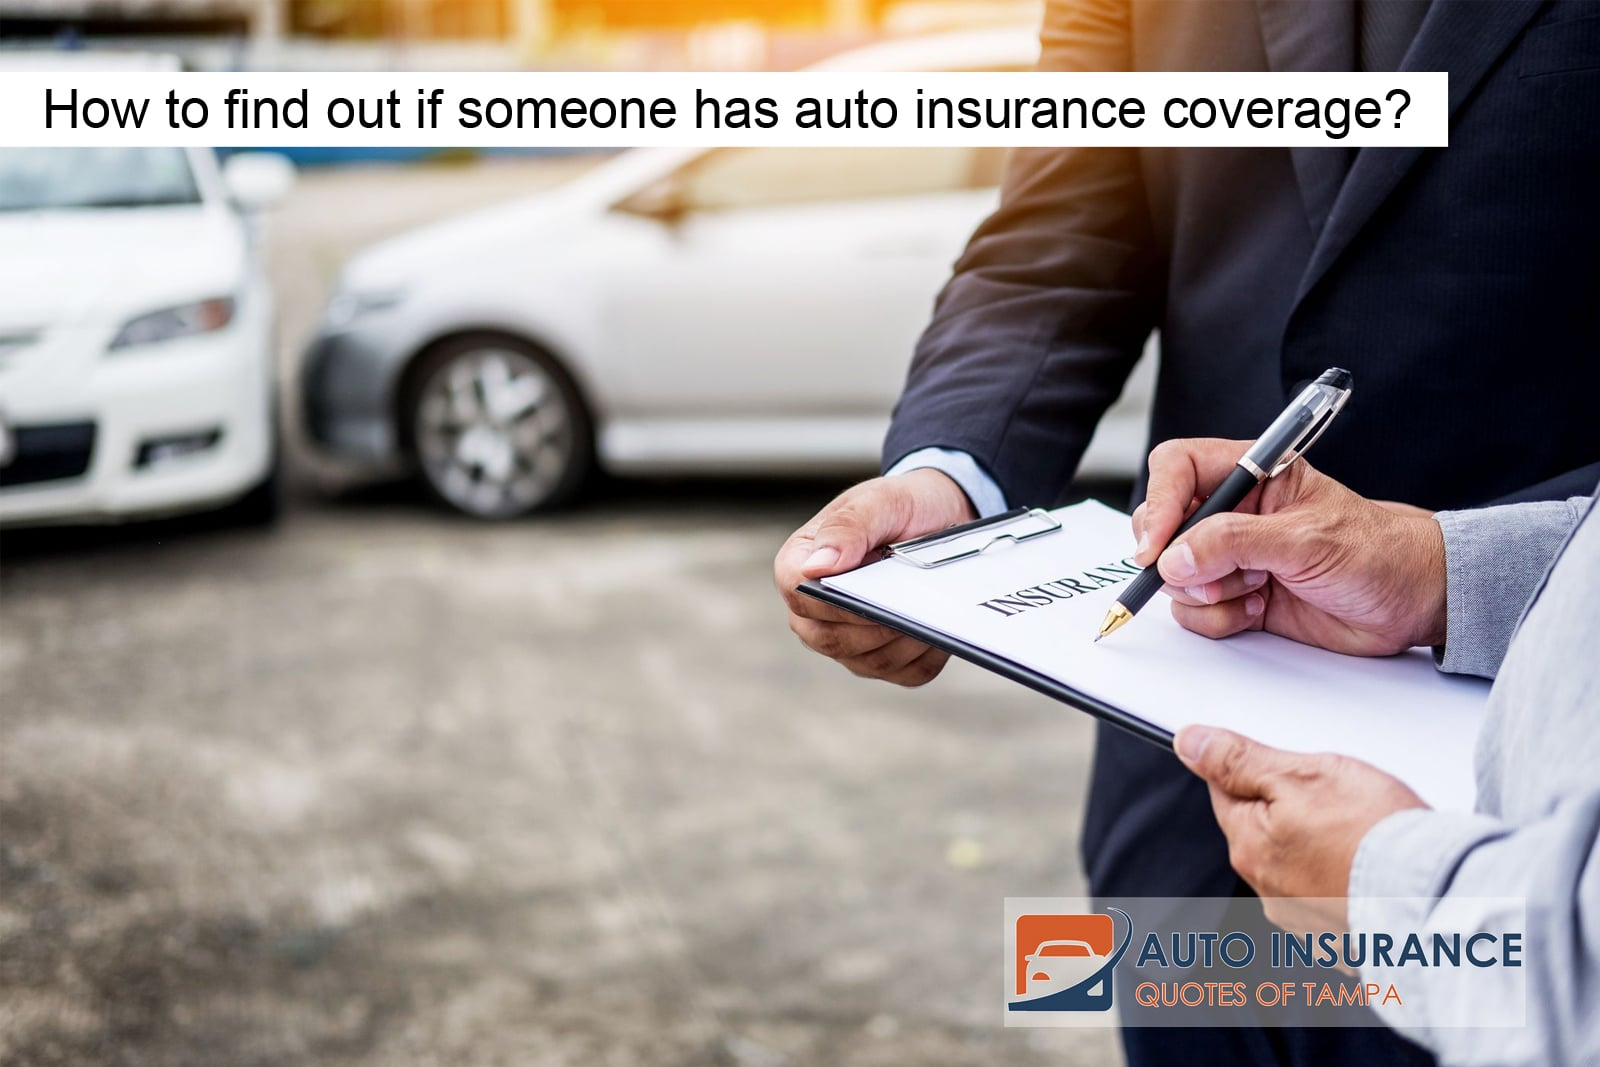 How to find out if someone has auto insurance coverage?